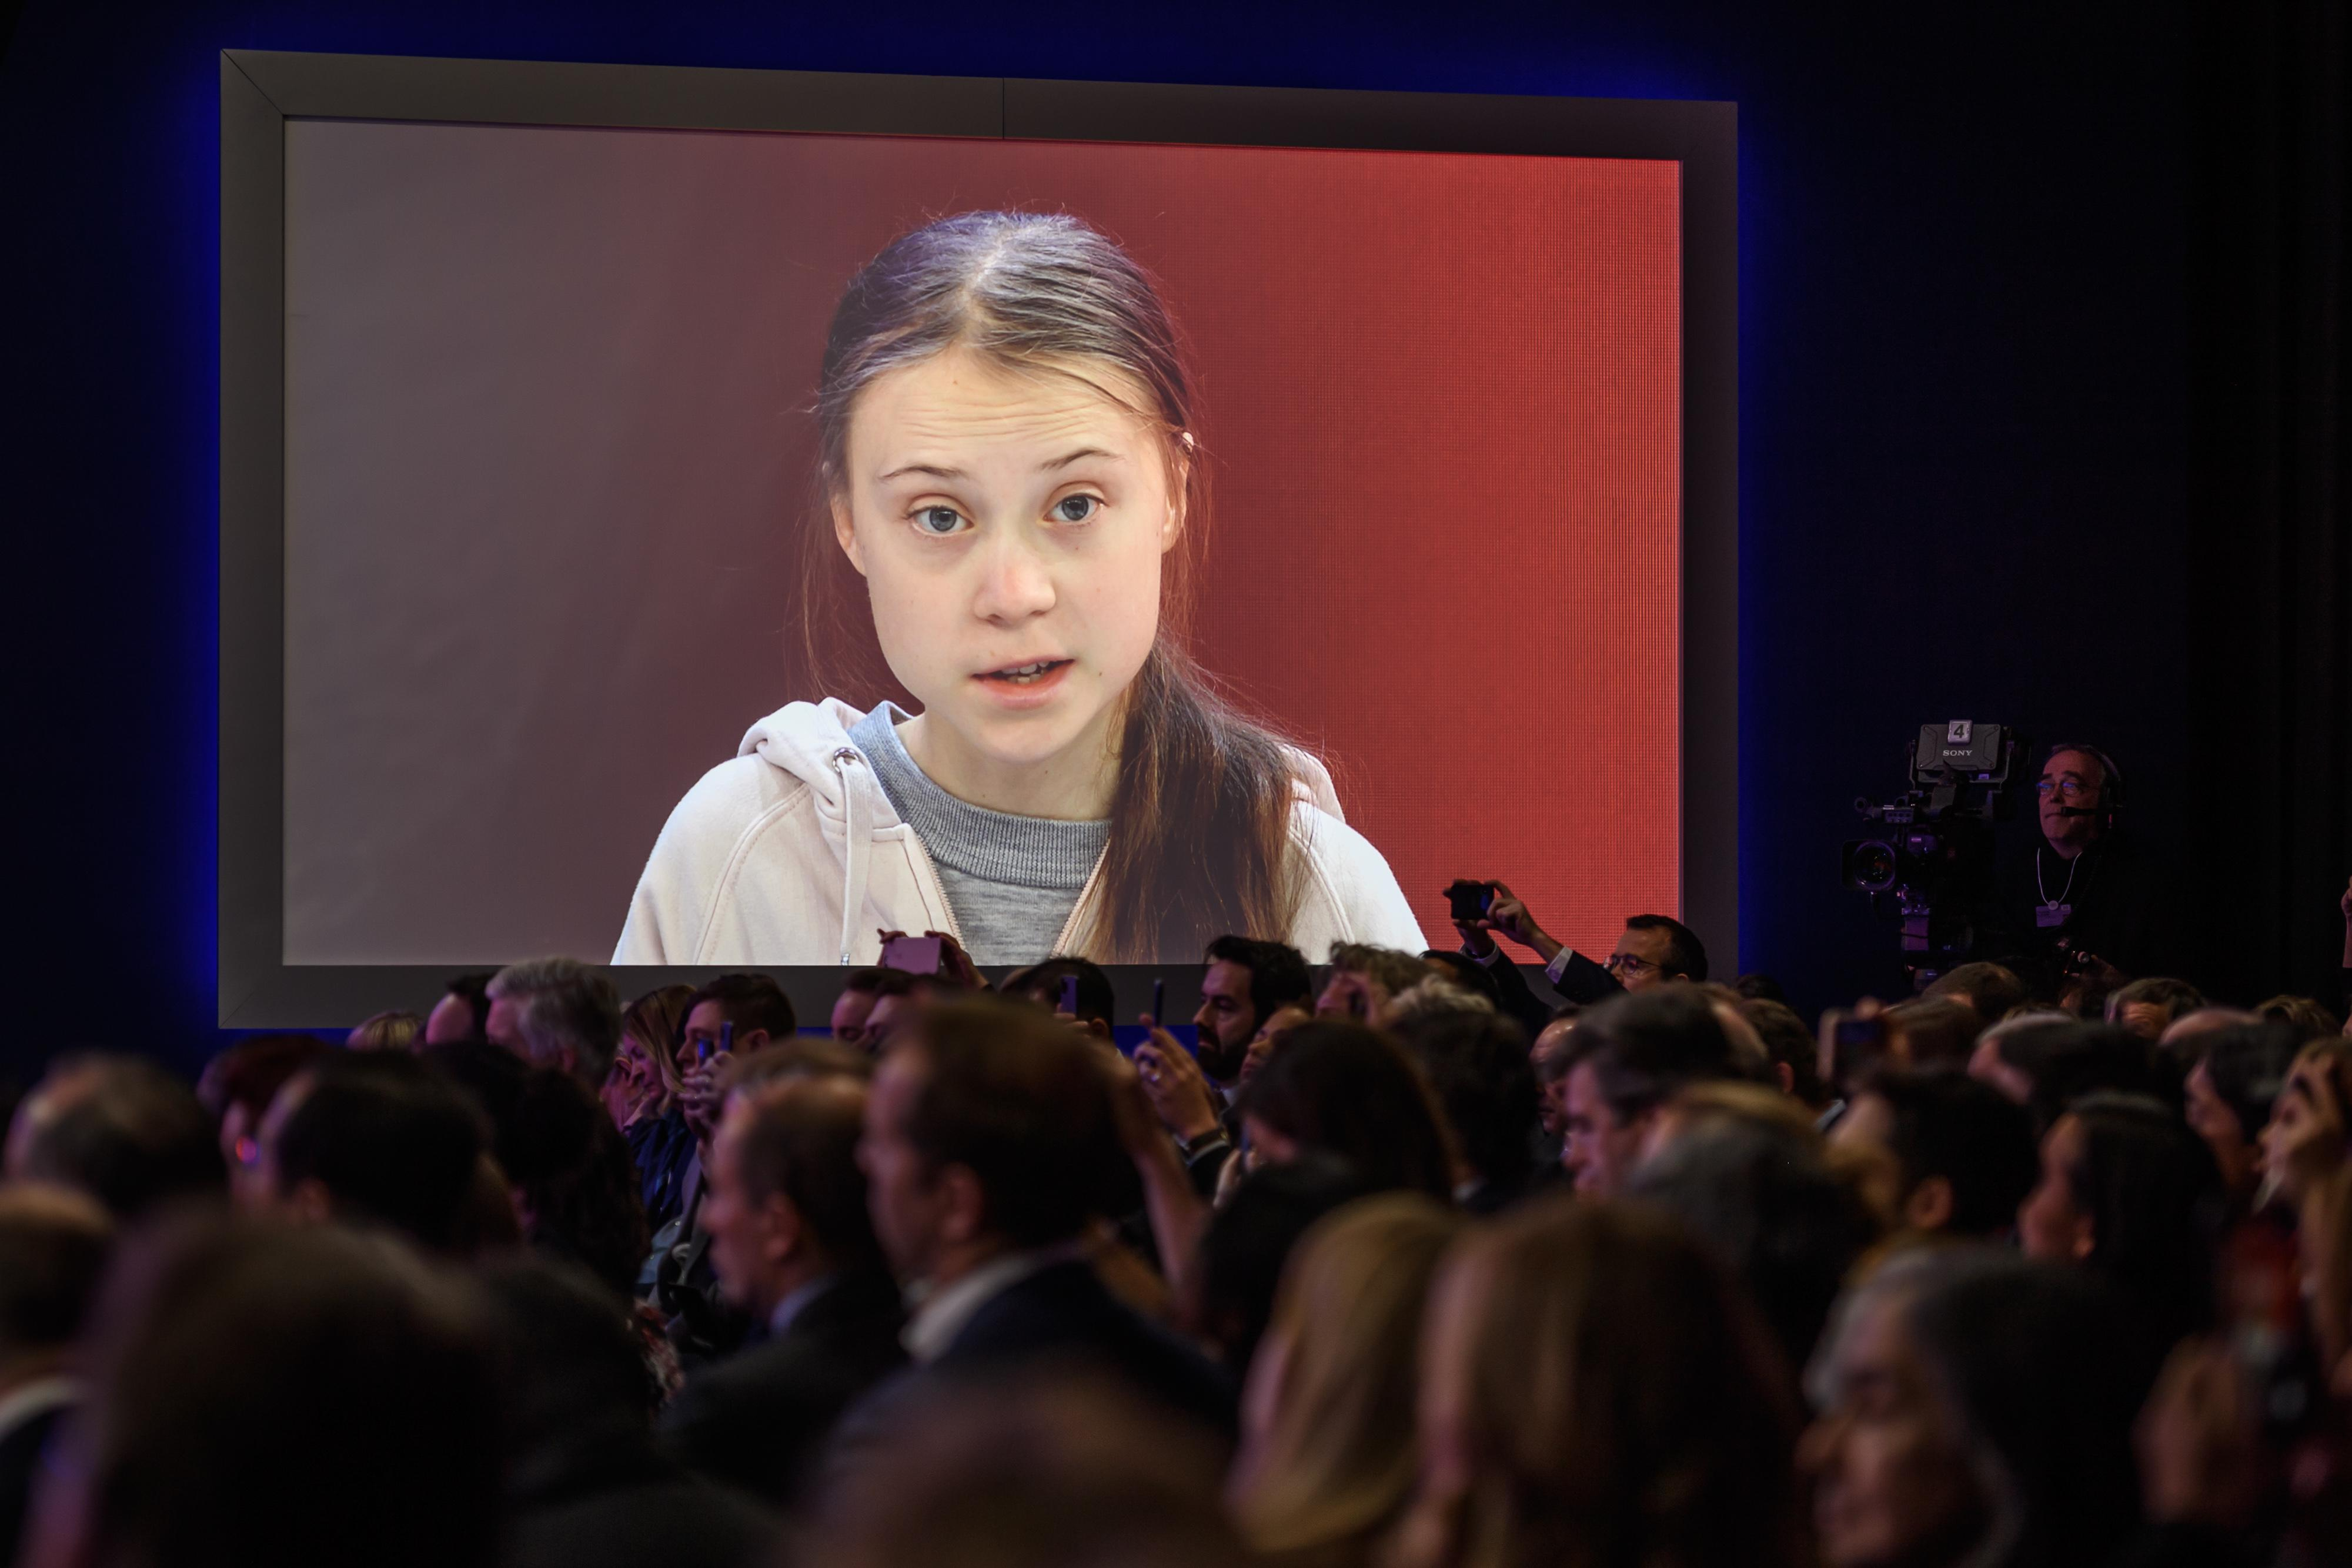 'Our house is still on fire': Greta Thunberg chides leaders for climate inaction